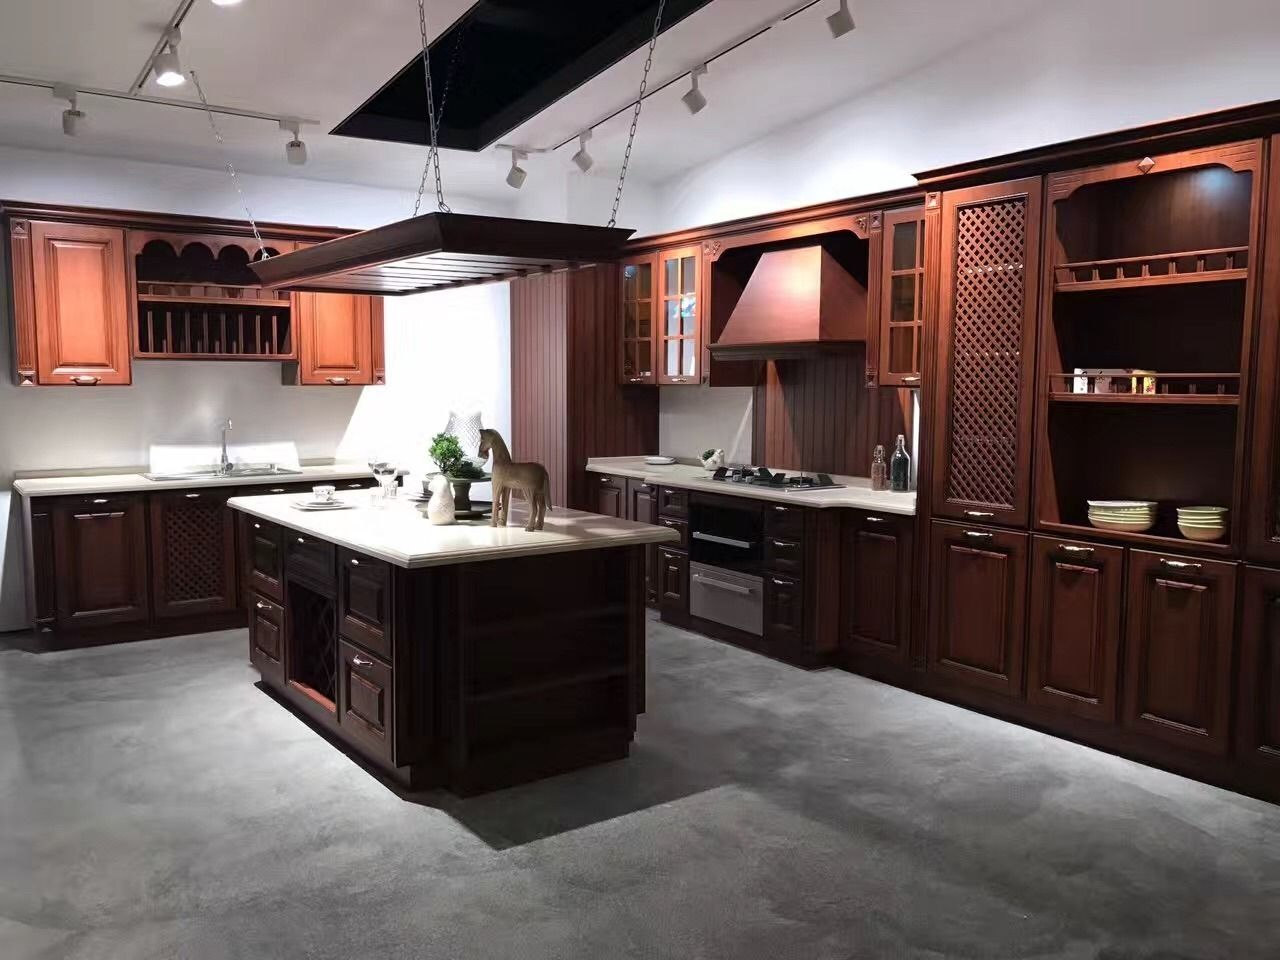 American Style Luxury Solid Wood Simple Designs Accessories Kitchen Furniture Kitchen Furniture Kitchen Cabinet Styles Solid Wood Kitchen Cabinets